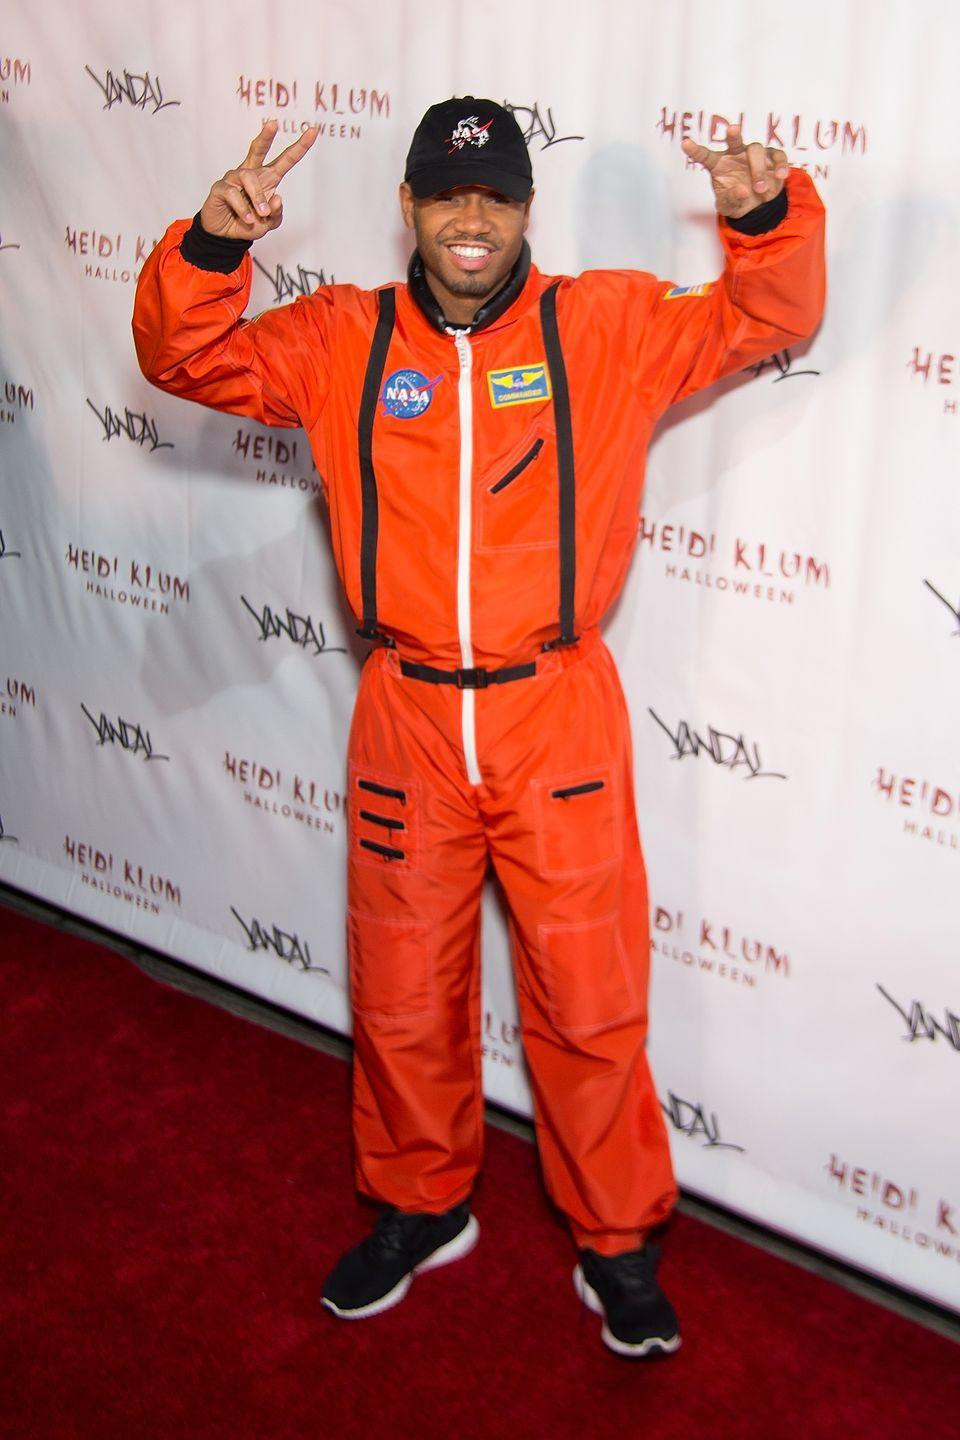 """<p>All you need is an orange jumpsuit and a NASA hat to put together an out-of-this-world astronaut costume. </p><p><a class=""""link rapid-noclick-resp"""" href=""""https://www.amazon.com/CQR-Utility-Coverall-Sleeve-Durable/dp/B083DH23WS/?tag=syn-yahoo-20&ascsubtag=%5Bartid%7C10070.g.28171554%5Bsrc%7Cyahoo-us"""" rel=""""nofollow noopener"""" target=""""_blank"""" data-ylk=""""slk:SHOP ORANGE JUMPSUIT"""">SHOP ORANGE JUMPSUIT</a></p>"""